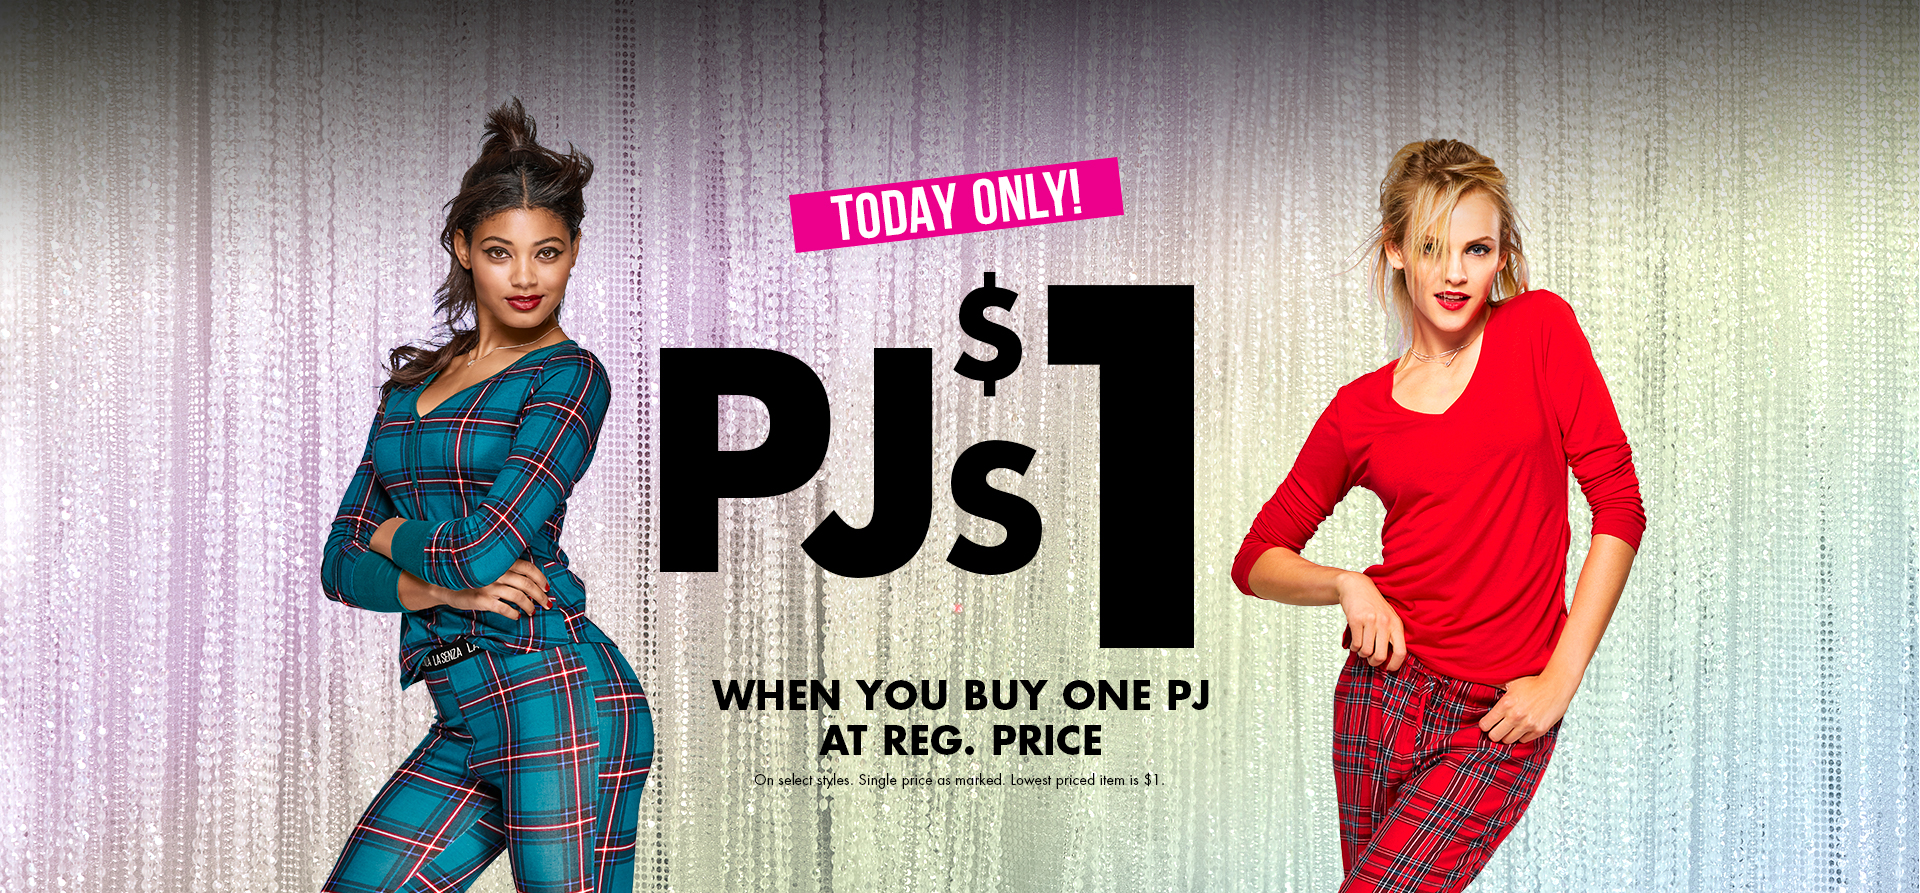 Today only! Bras $25 EACH. On select styles. Excludes feather-lite bras. Pjs $1 When you buy a pj at reg. price. On select styles. Single price as marked.